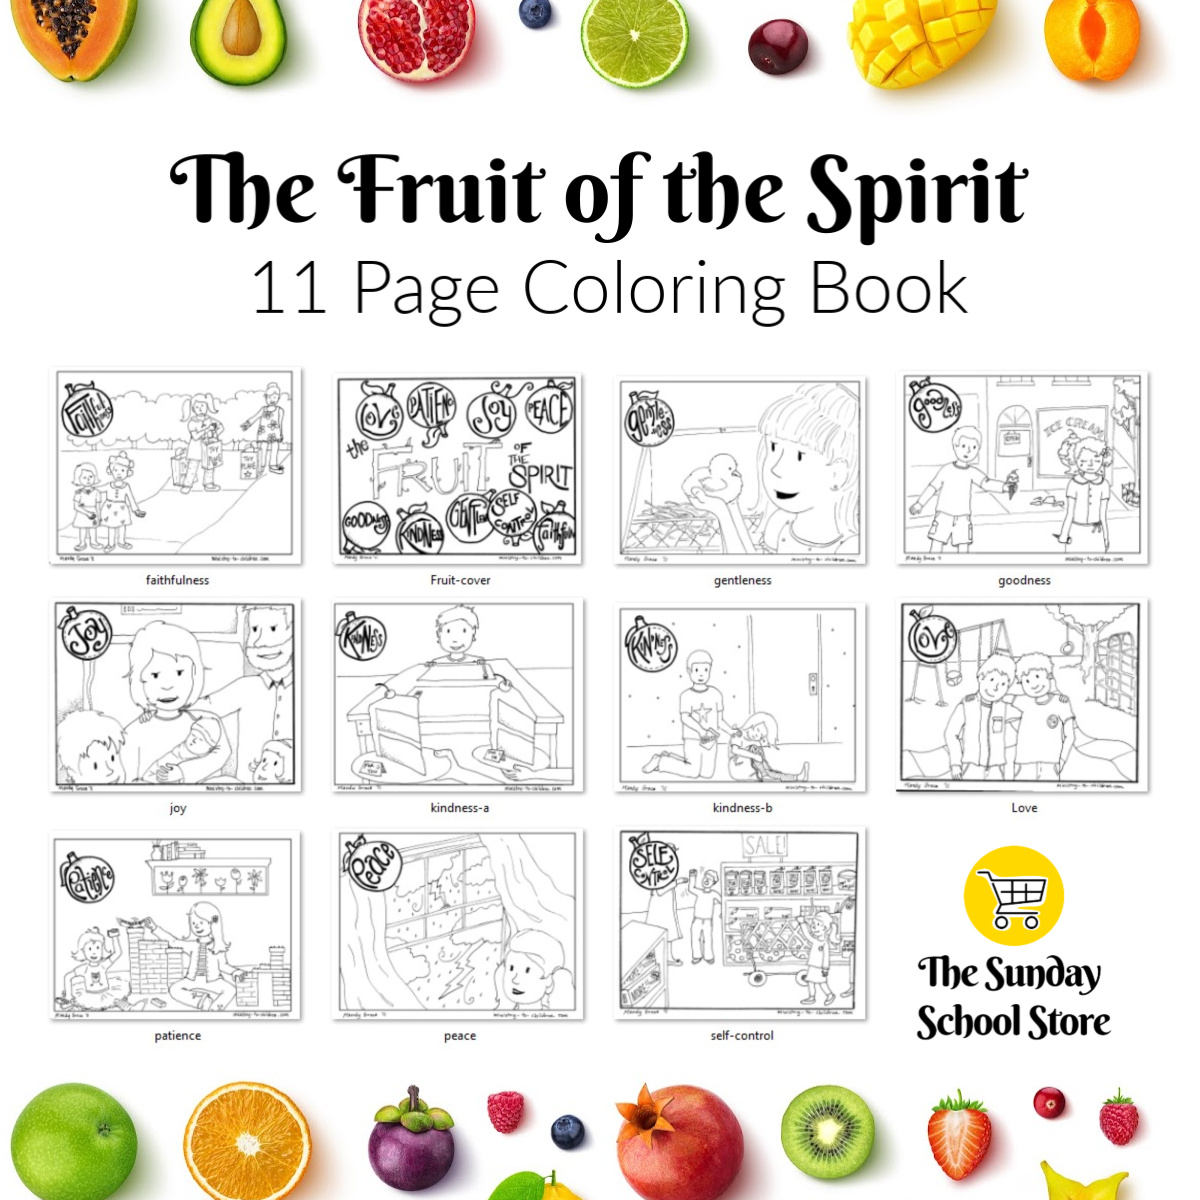 Pears coloring sheets to print and color 019 | Coloring pages ... | 1200x1200